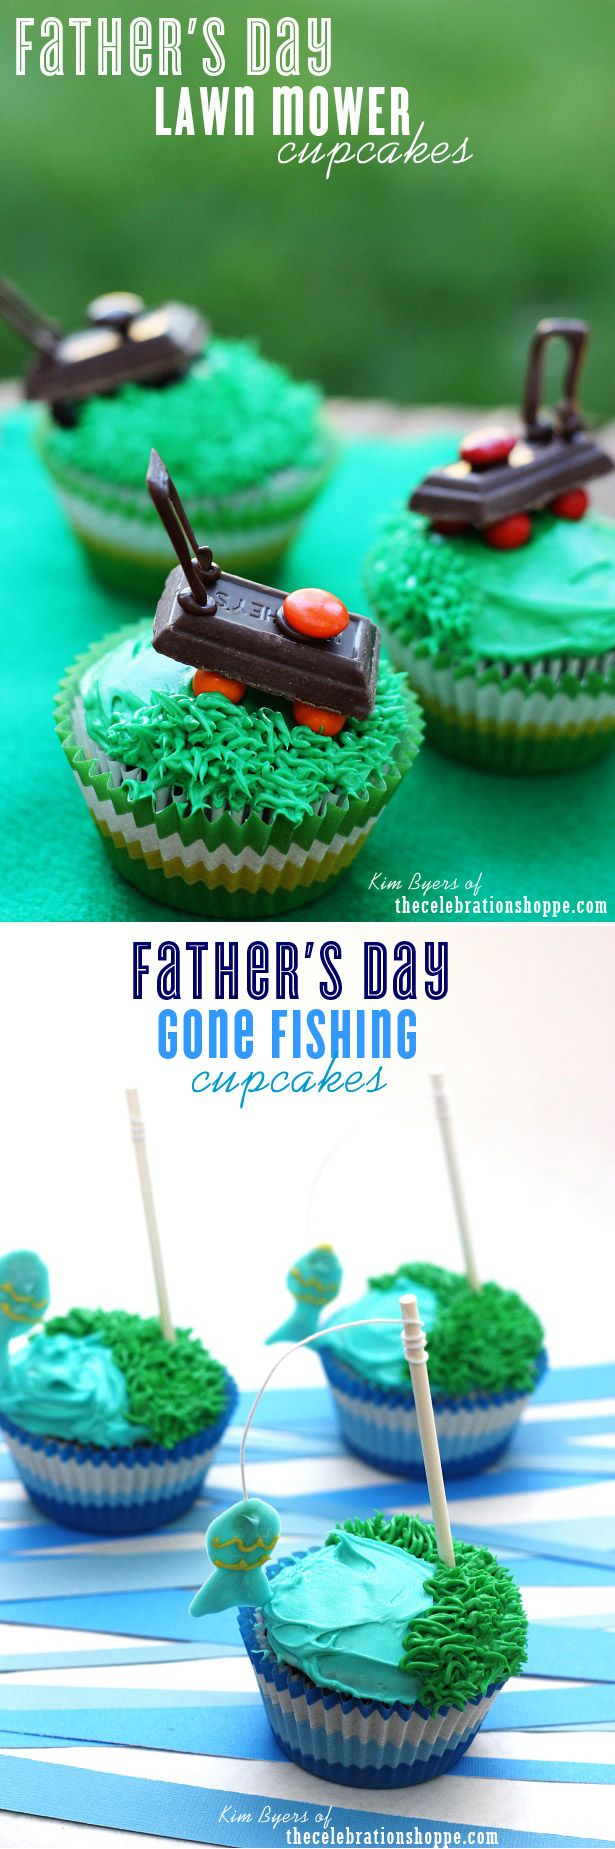 Father's Day Cupcake Ideas | Kim Byers, TheCelebrationShoppe.com